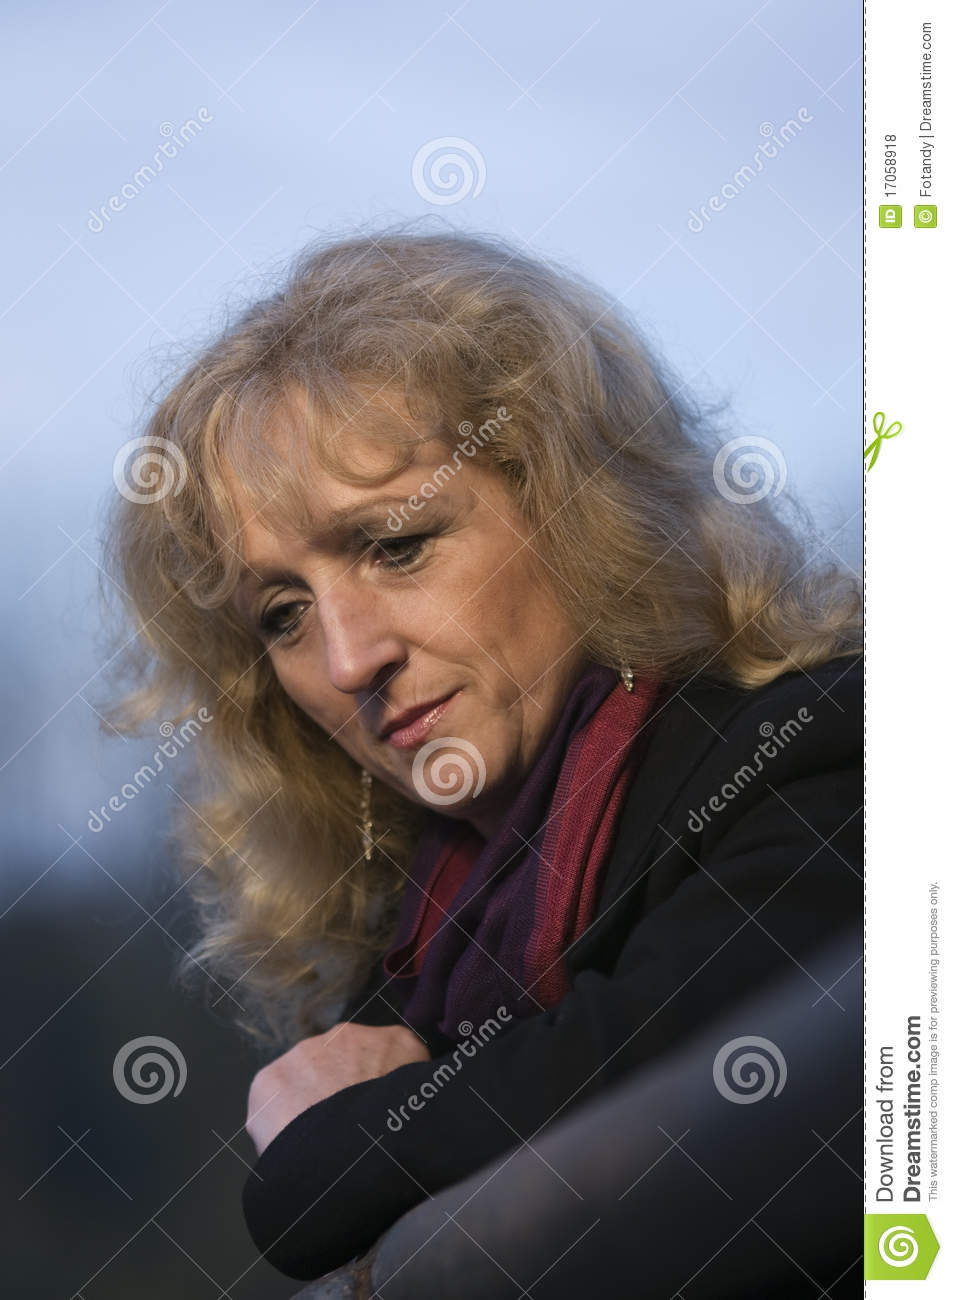 sad woman looking down royalty free stock photos